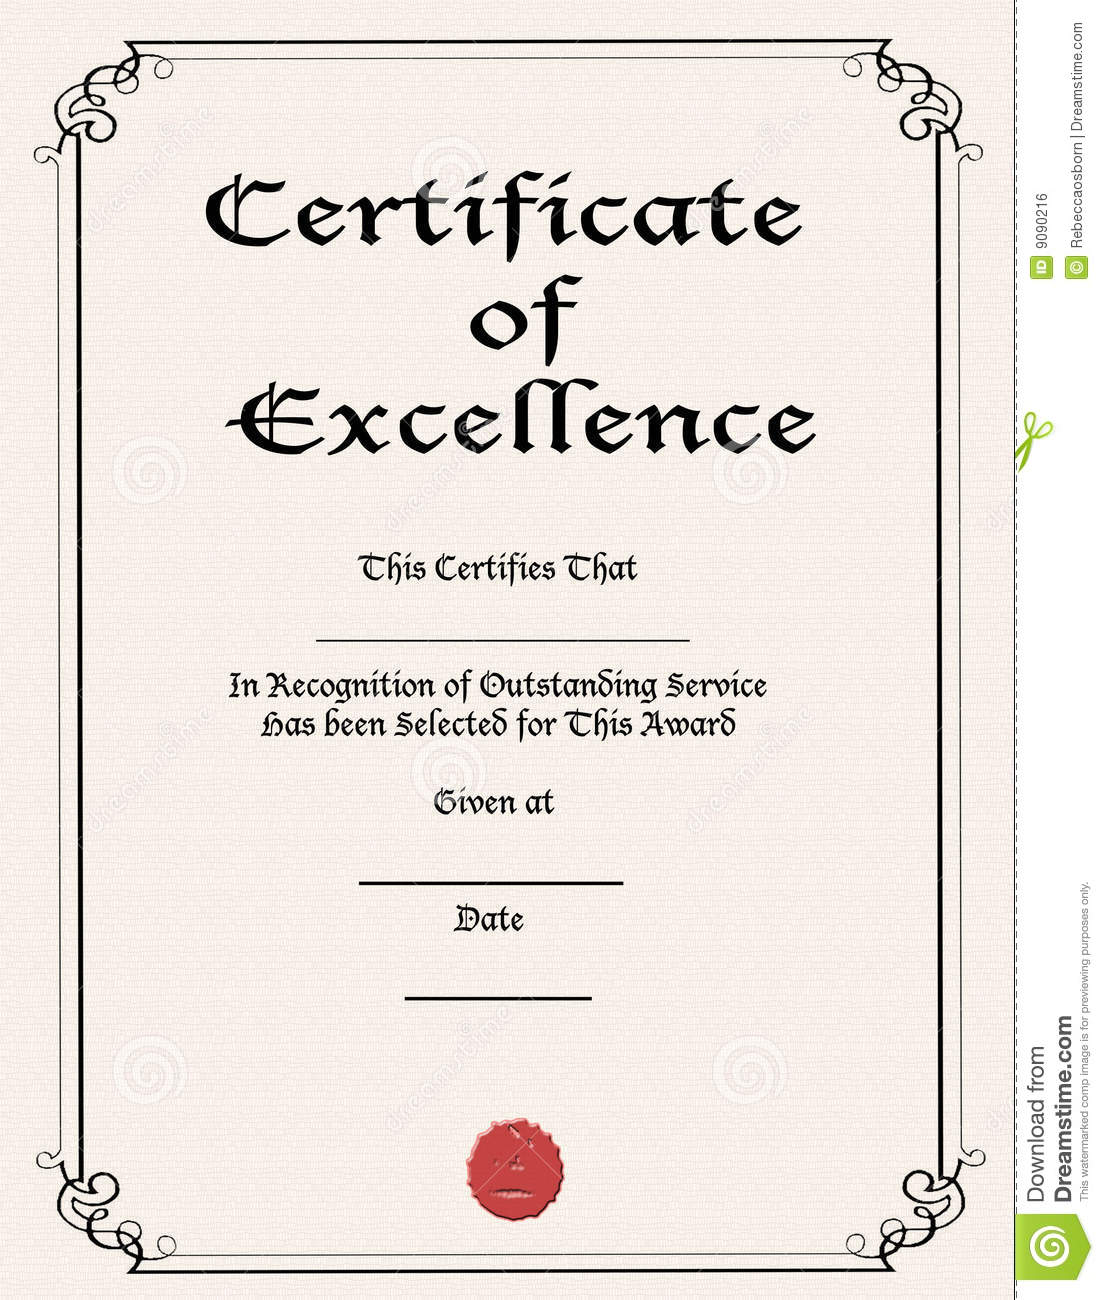 Certificate Of Excellence Template Free 9 best images of – Certificates of Excellence Templates